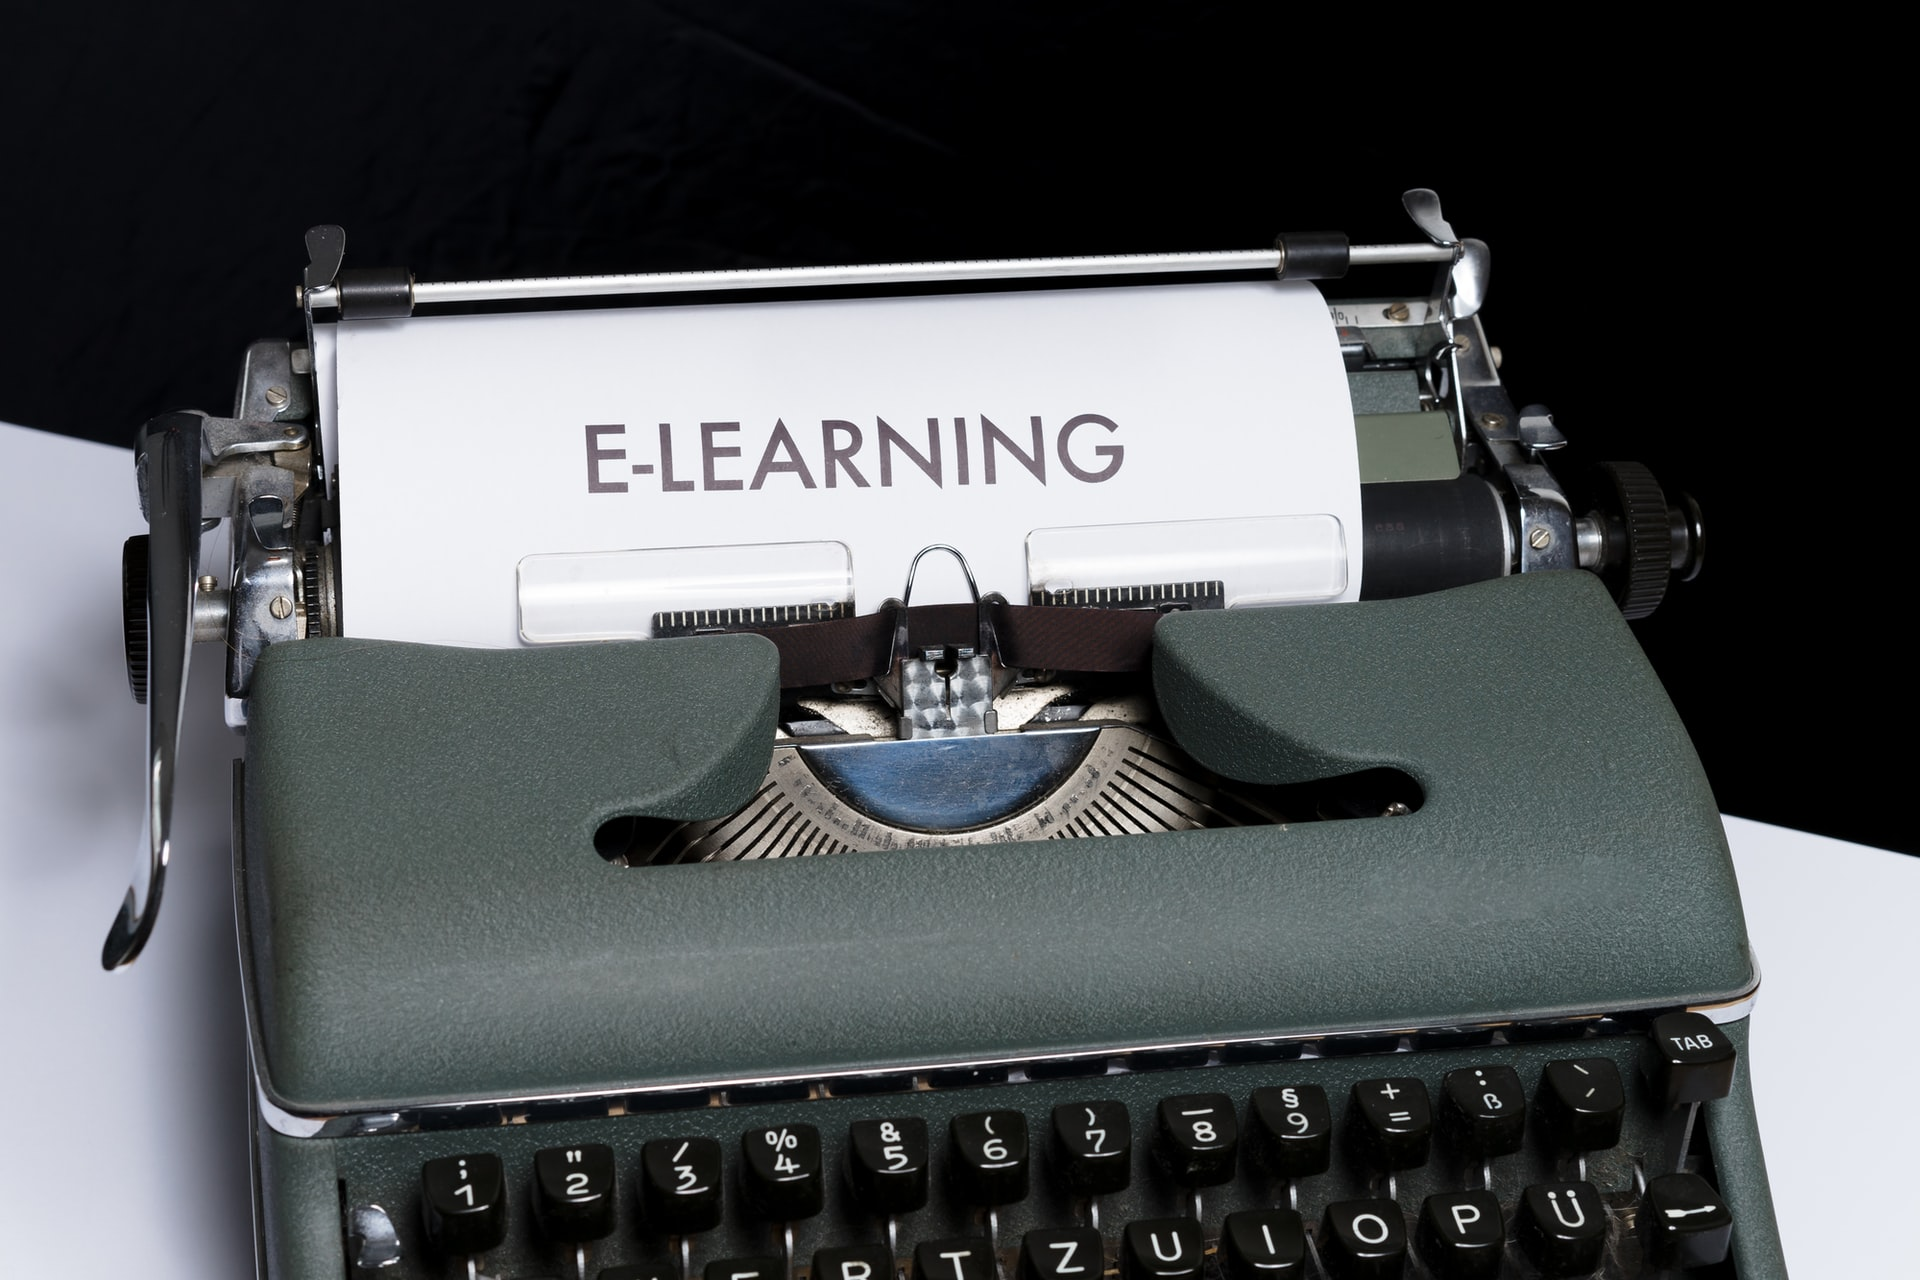 How to effectively study eLearning